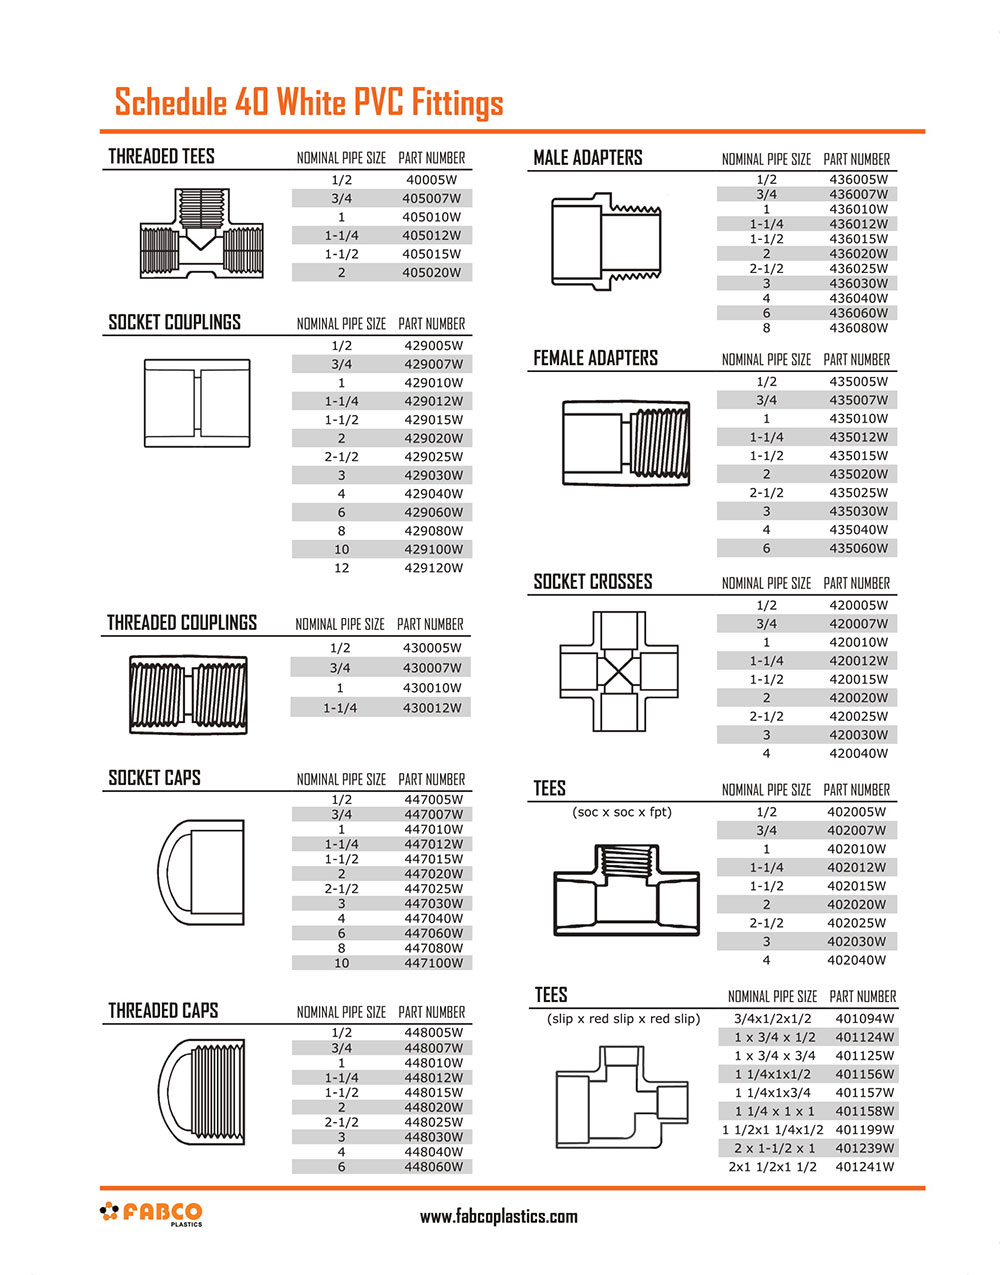 Schedule 40 White PVC Fittings